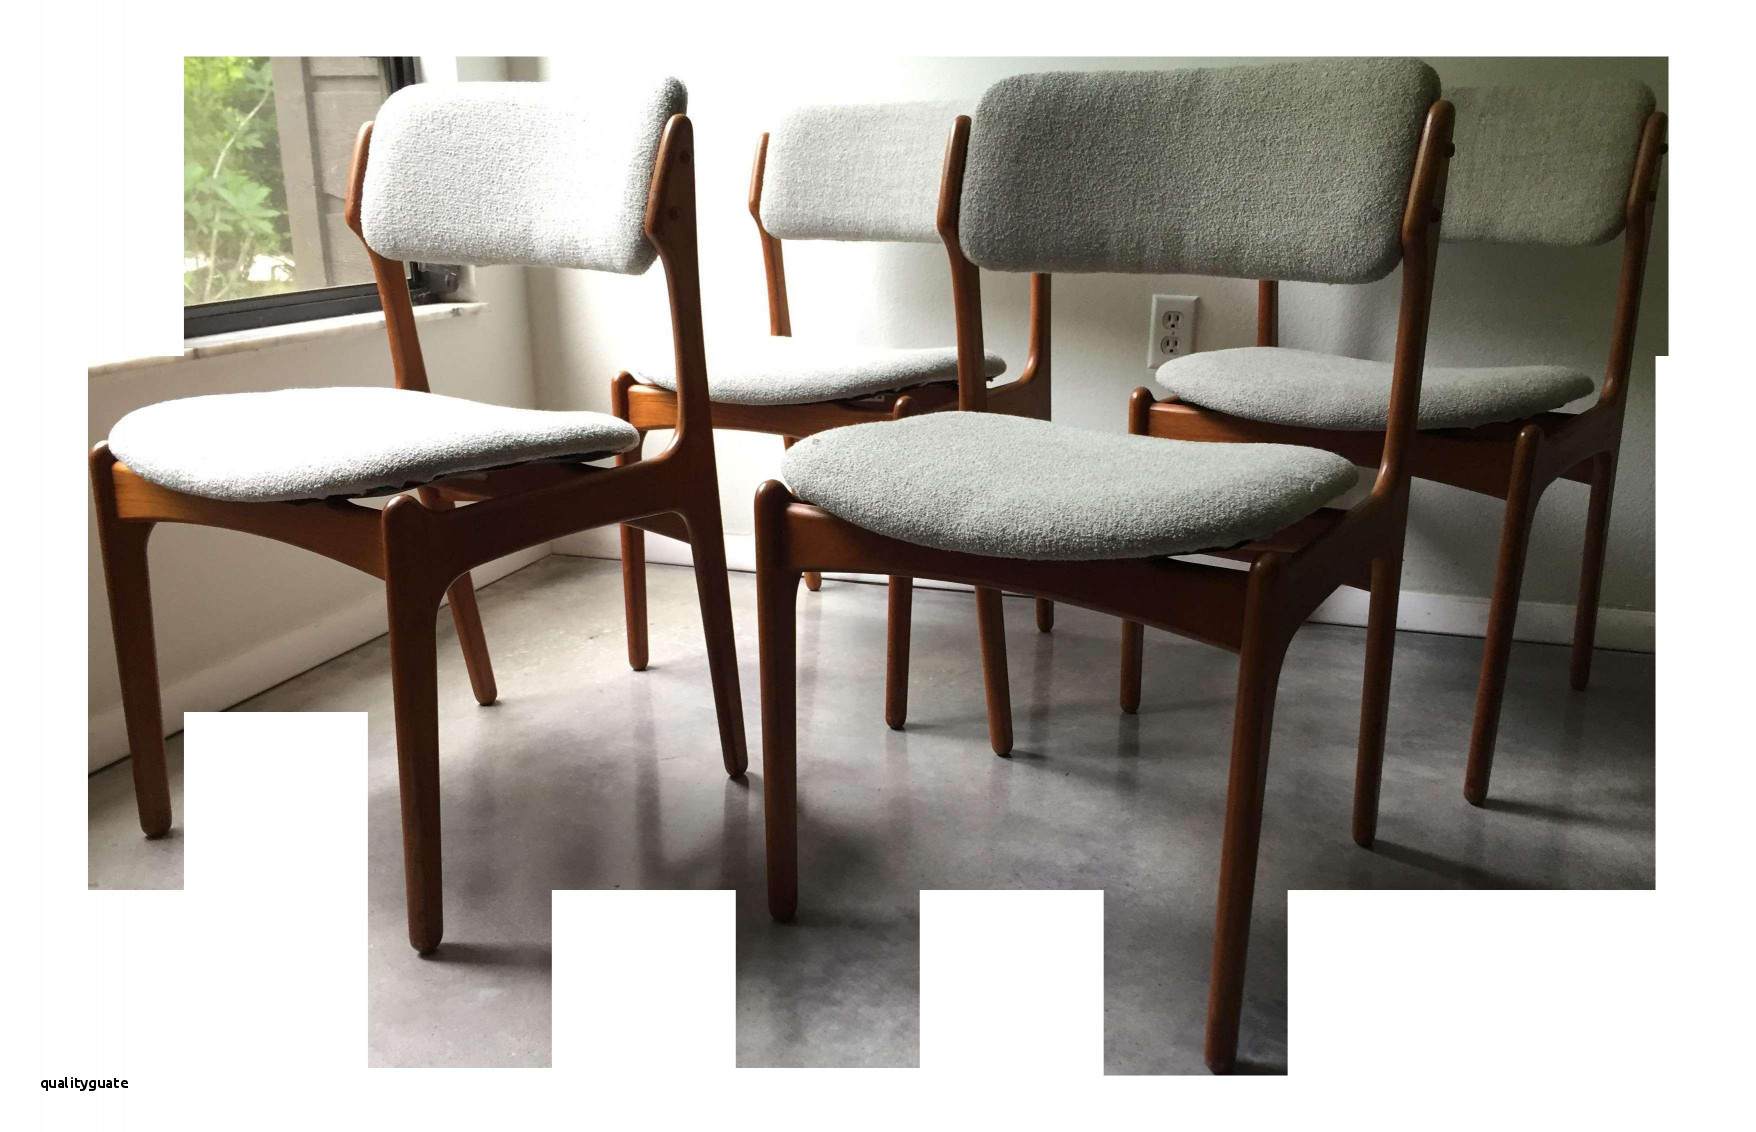 gray hardwood floor colors of grey and wood dining table fantastic dining room table chairs inside grey and wood dining table fantastic dining room table chairs awesome vintage erik buck o d mobler danish